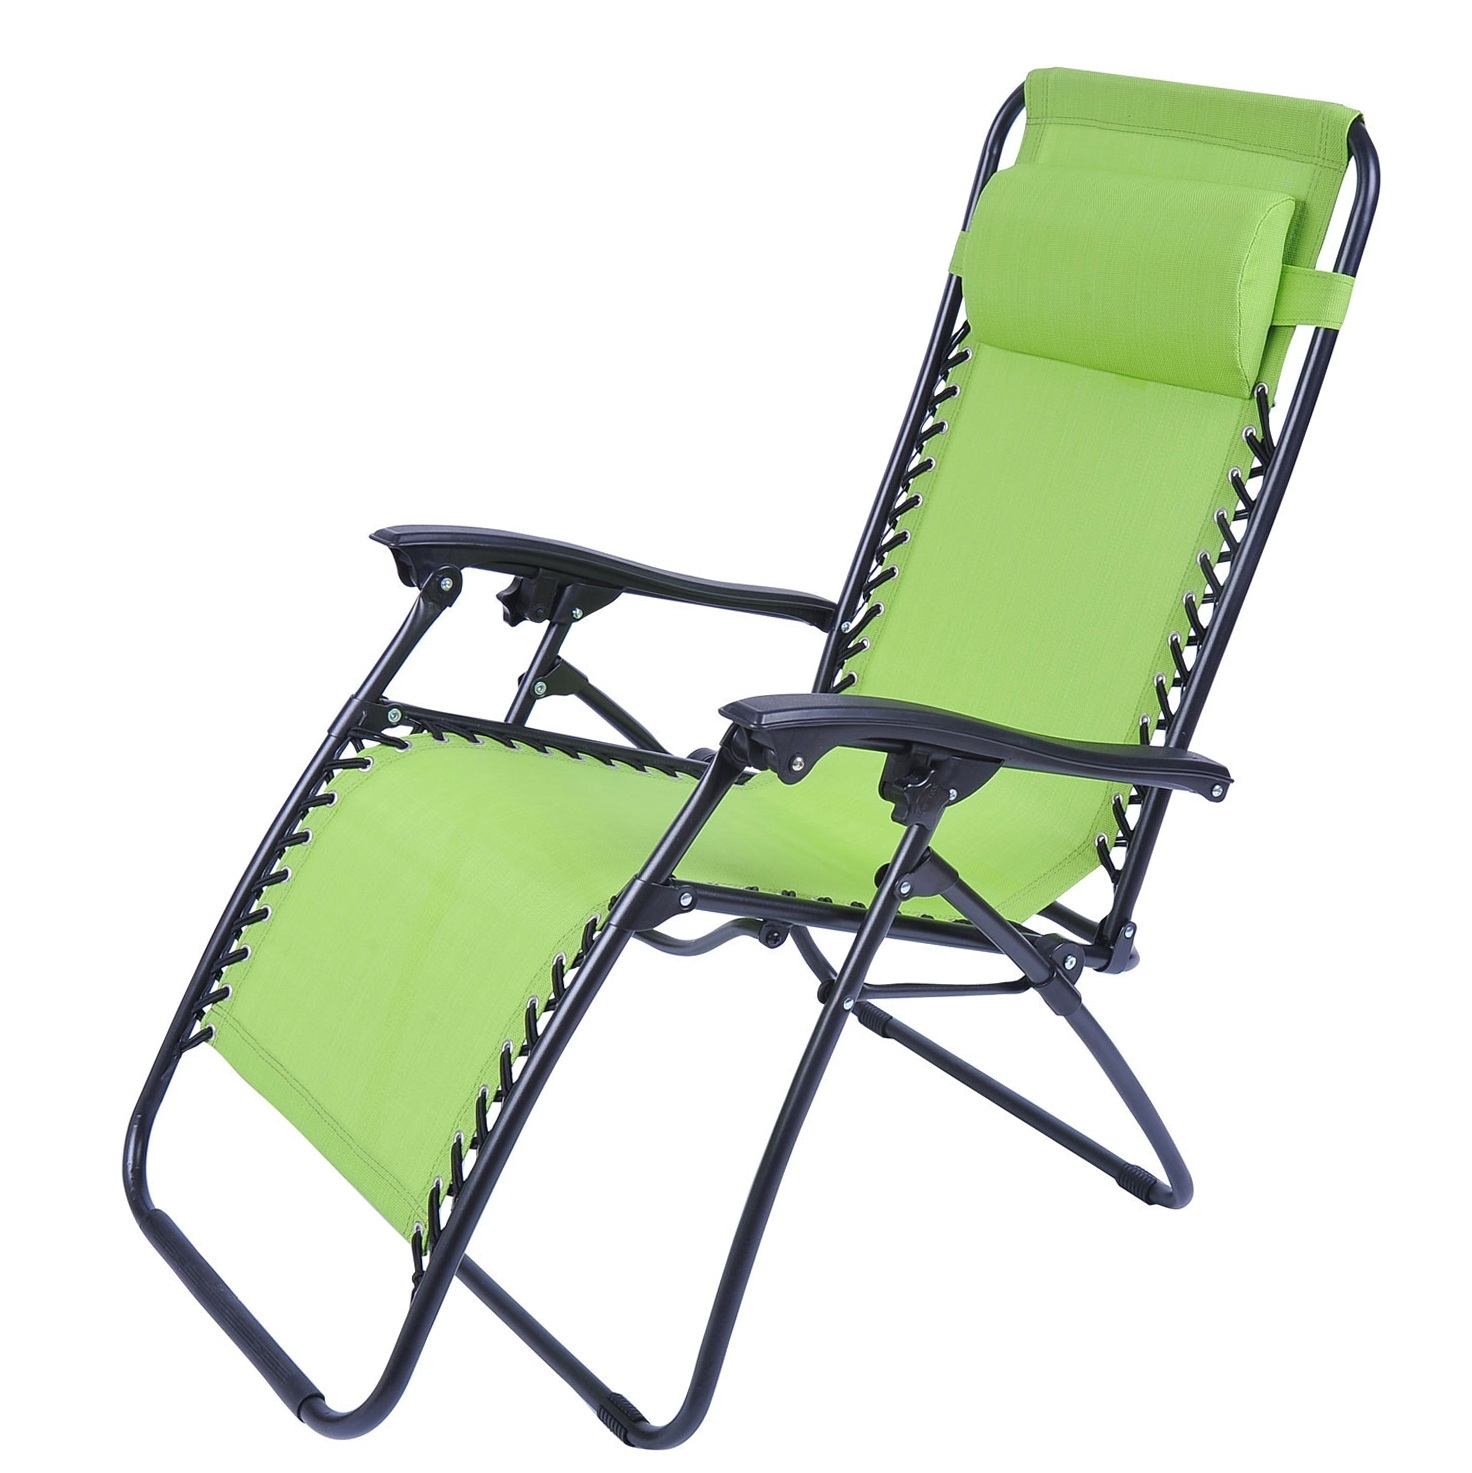 Zero Gravity Chaise Lounges Inside Newest Folding Chaise Lounge Chair Patio Outdoor Pool Beach Lawn Recliner (View 13 of 15)